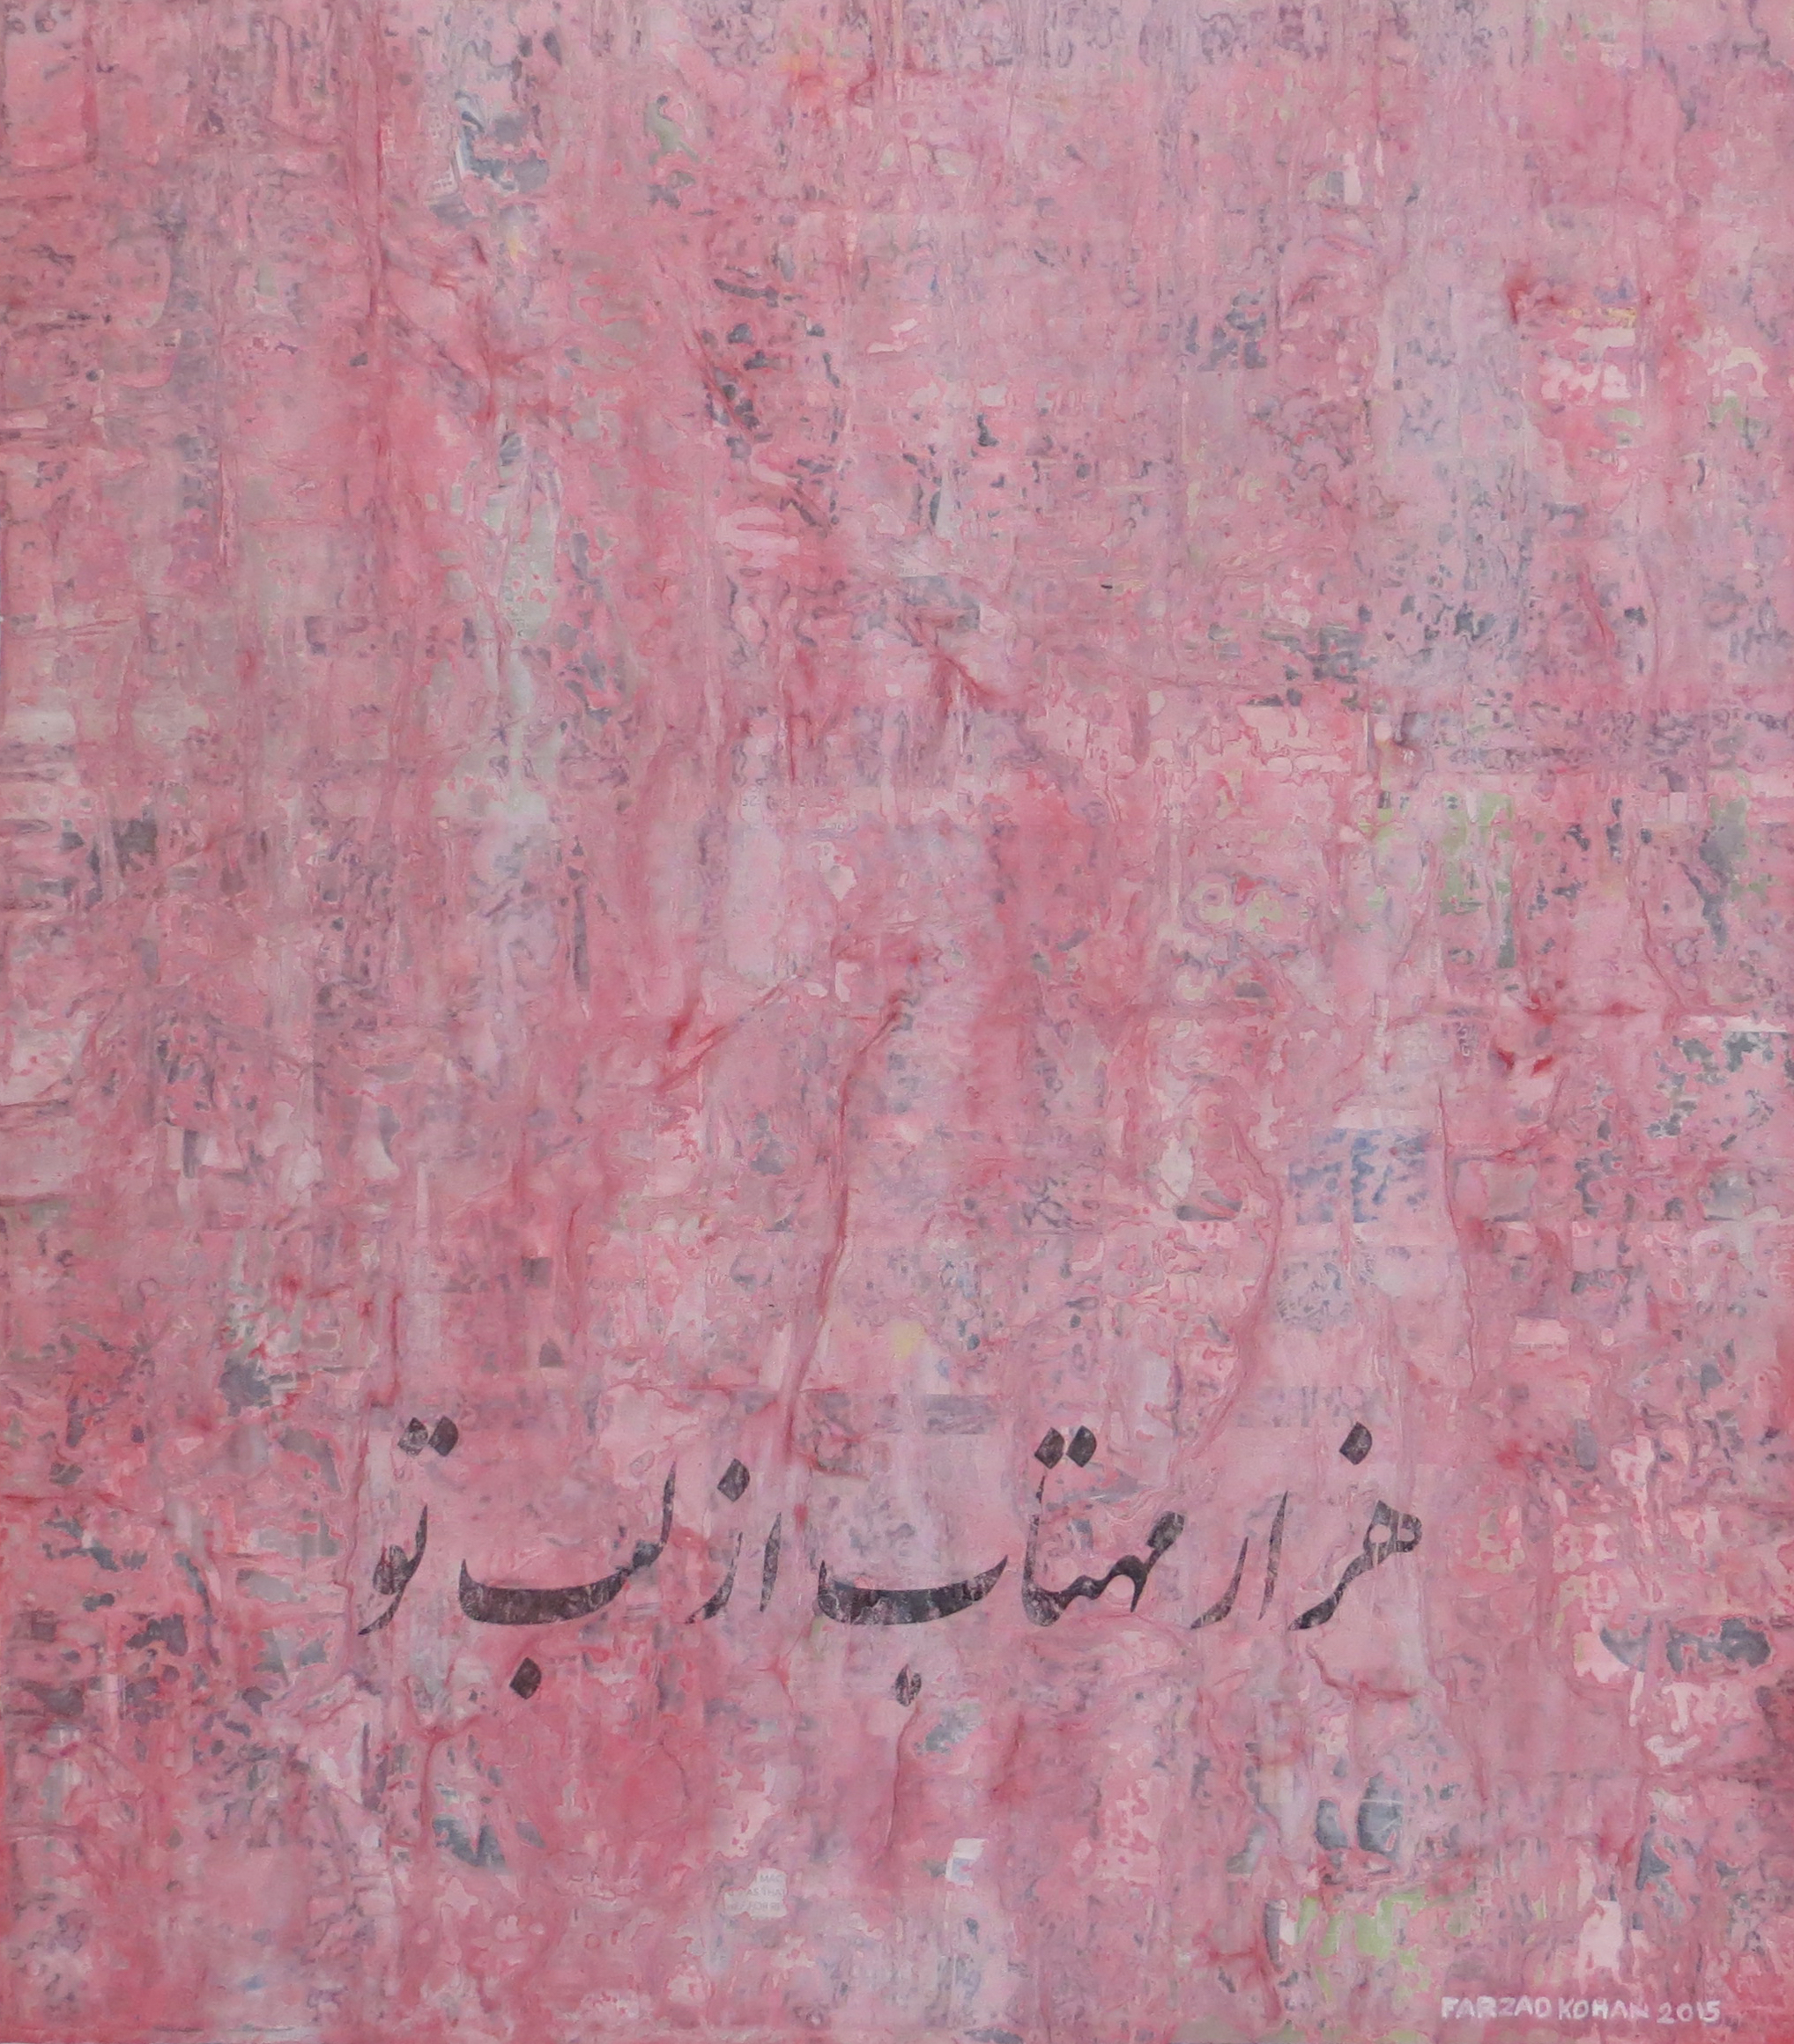 A Thousand Moonlights From Your Lips - Kohan, Farzad